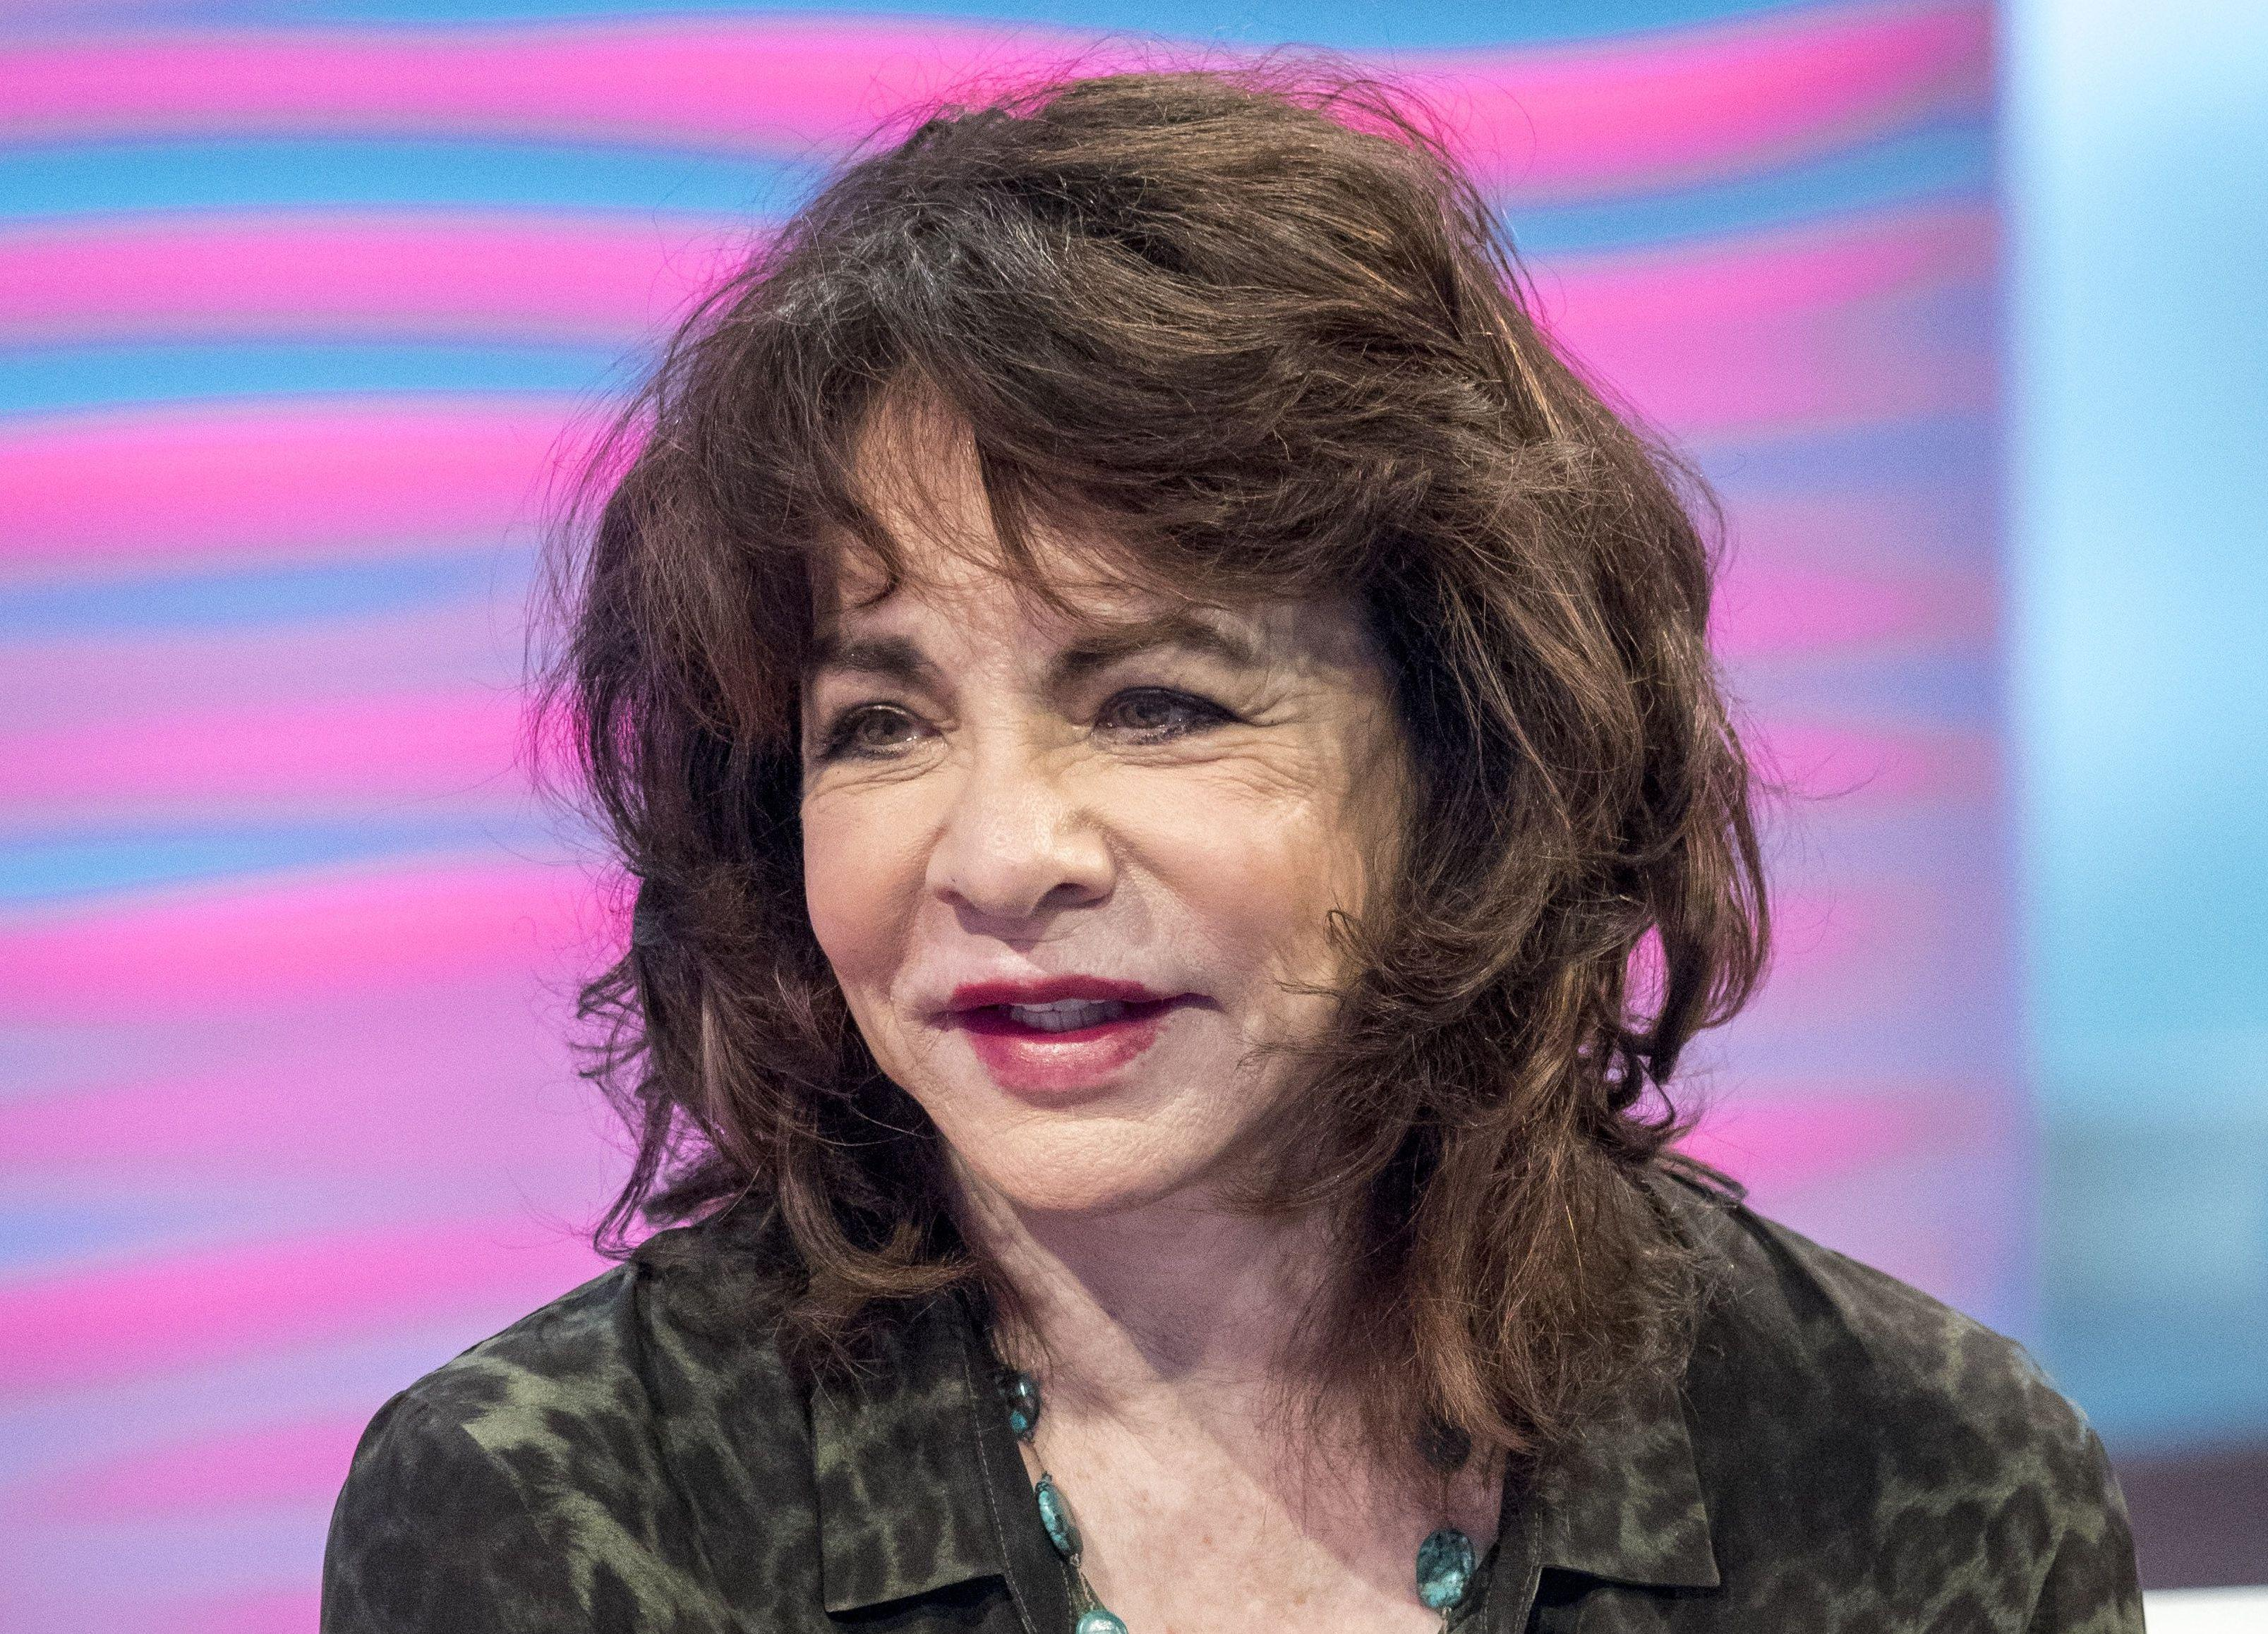 Stockard Channing appears on Lorraine show